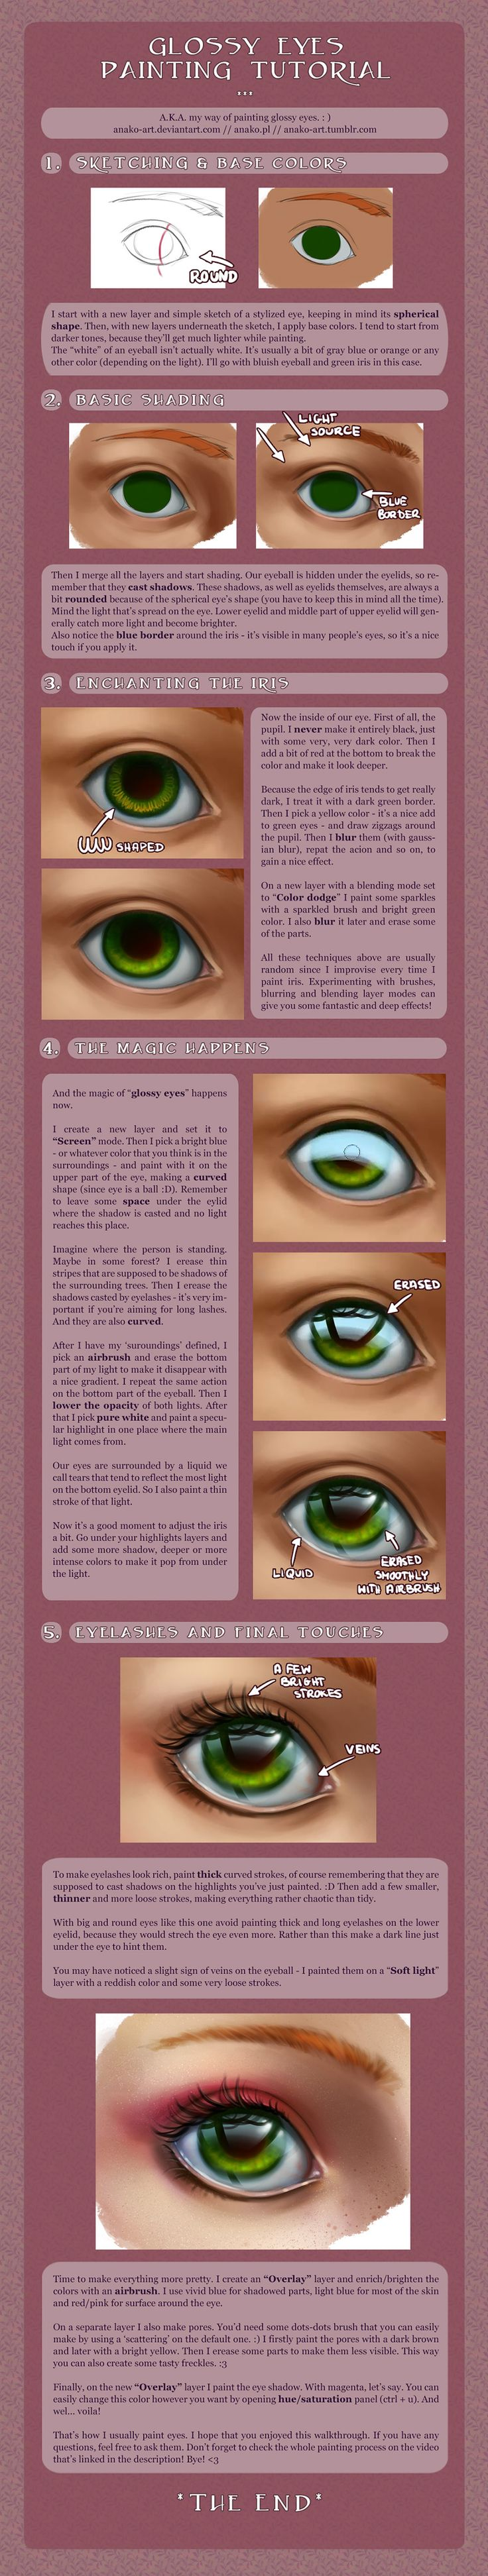 glossy eye tutorial - with a VIDEO! (edit!) by anako-art.deviantart.com on @deviantART